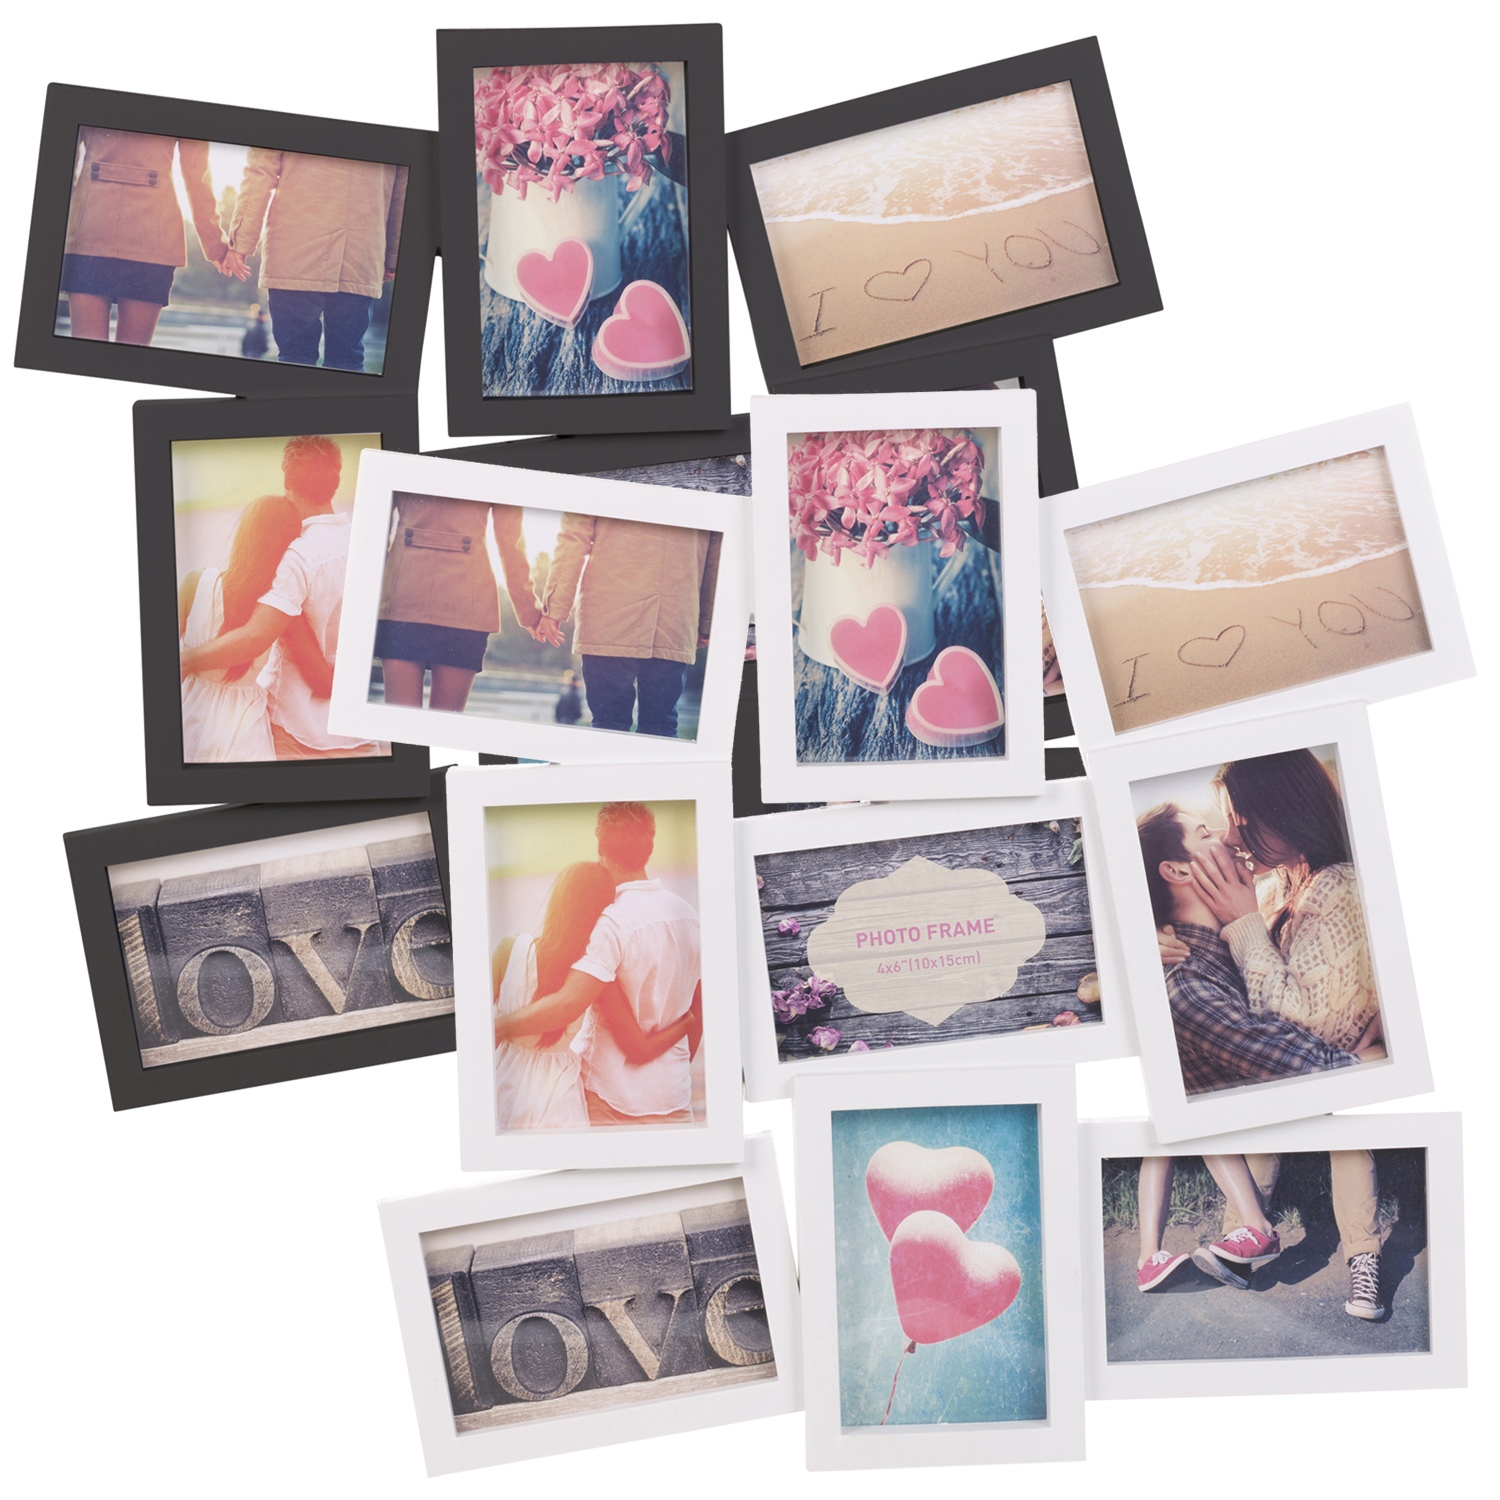 8 9 12 16 18 24 photos large multi picture frame collage aperture decor memories ebay. Black Bedroom Furniture Sets. Home Design Ideas